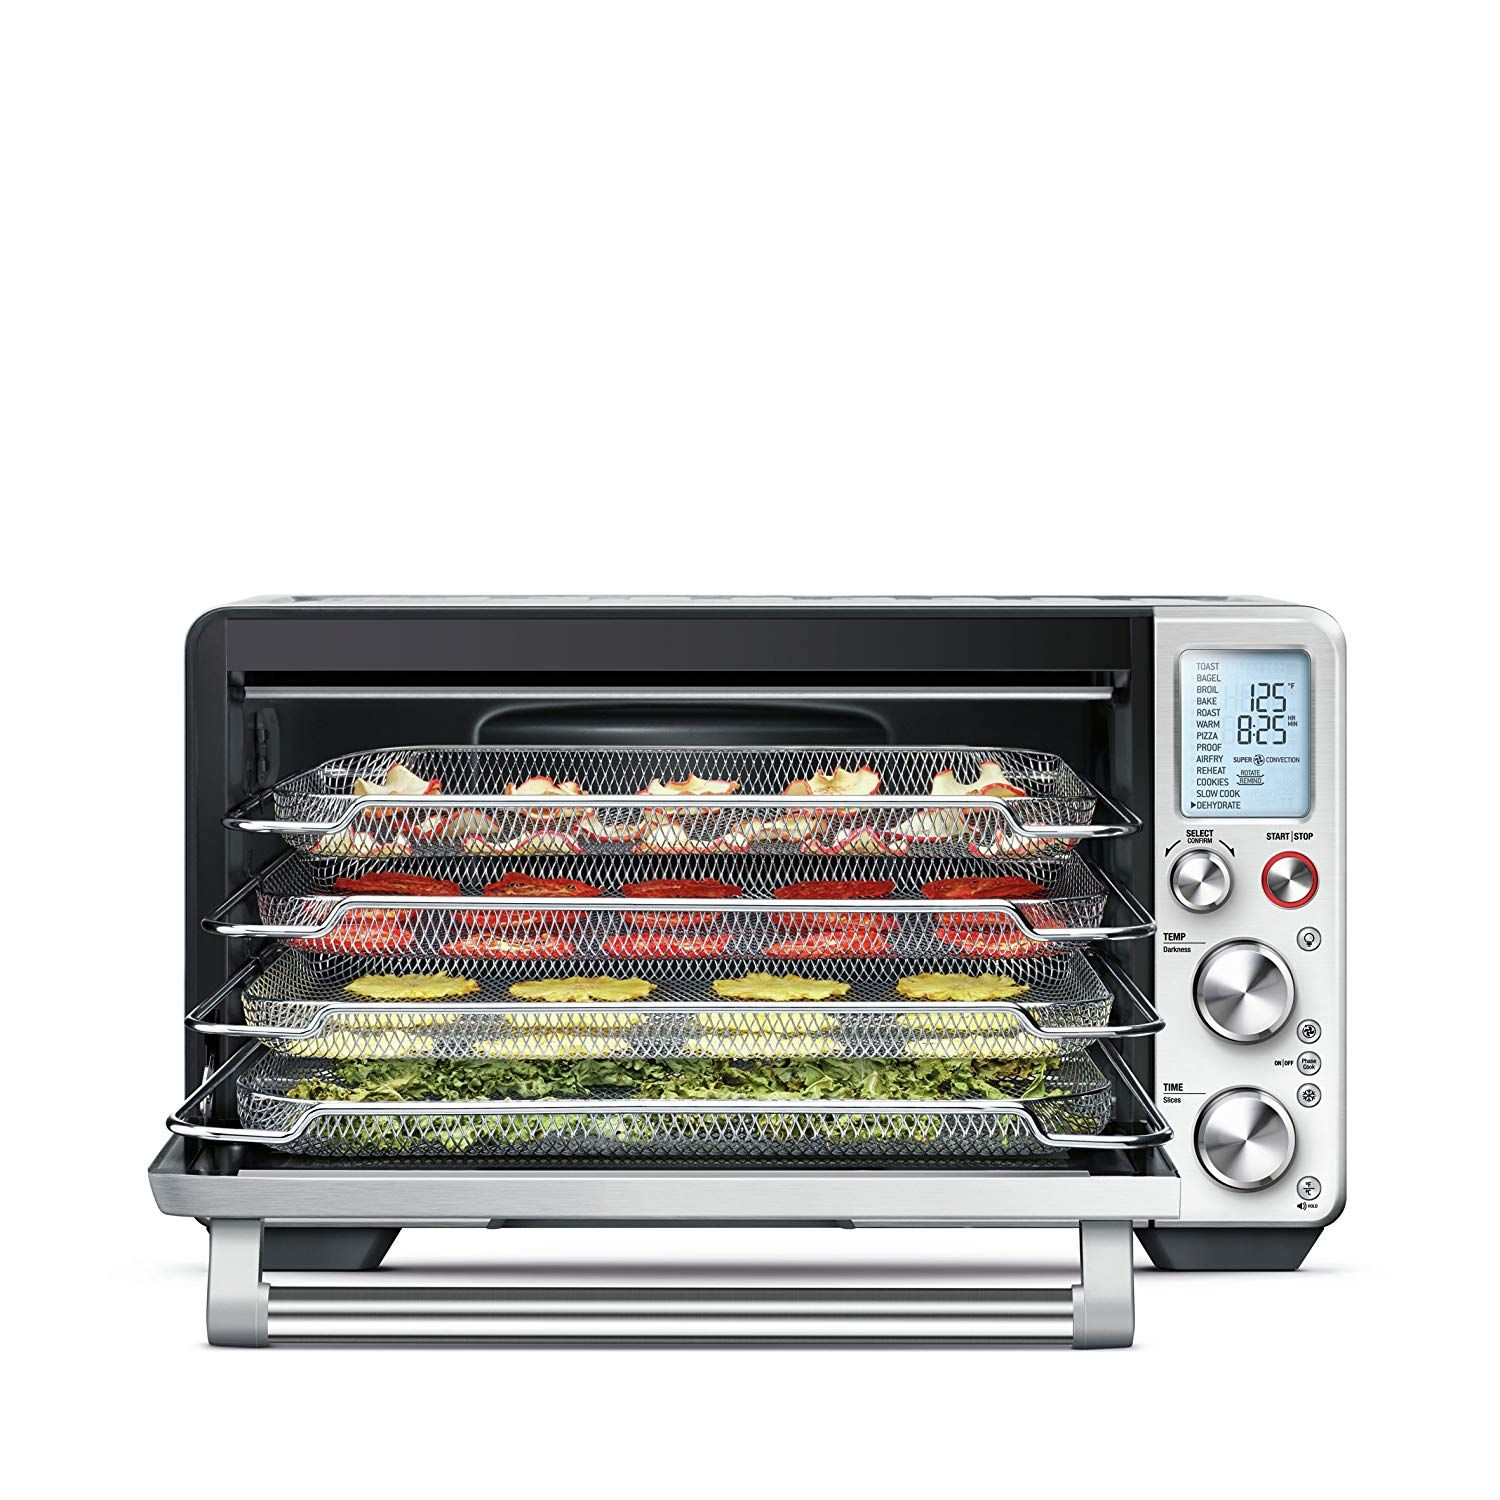 Breville Bov900bss Convection And Air Fry Smart Oven Air You Can Get More Details By Clicking On The Image Convection Toaster Oven Smart Oven Toaster Oven